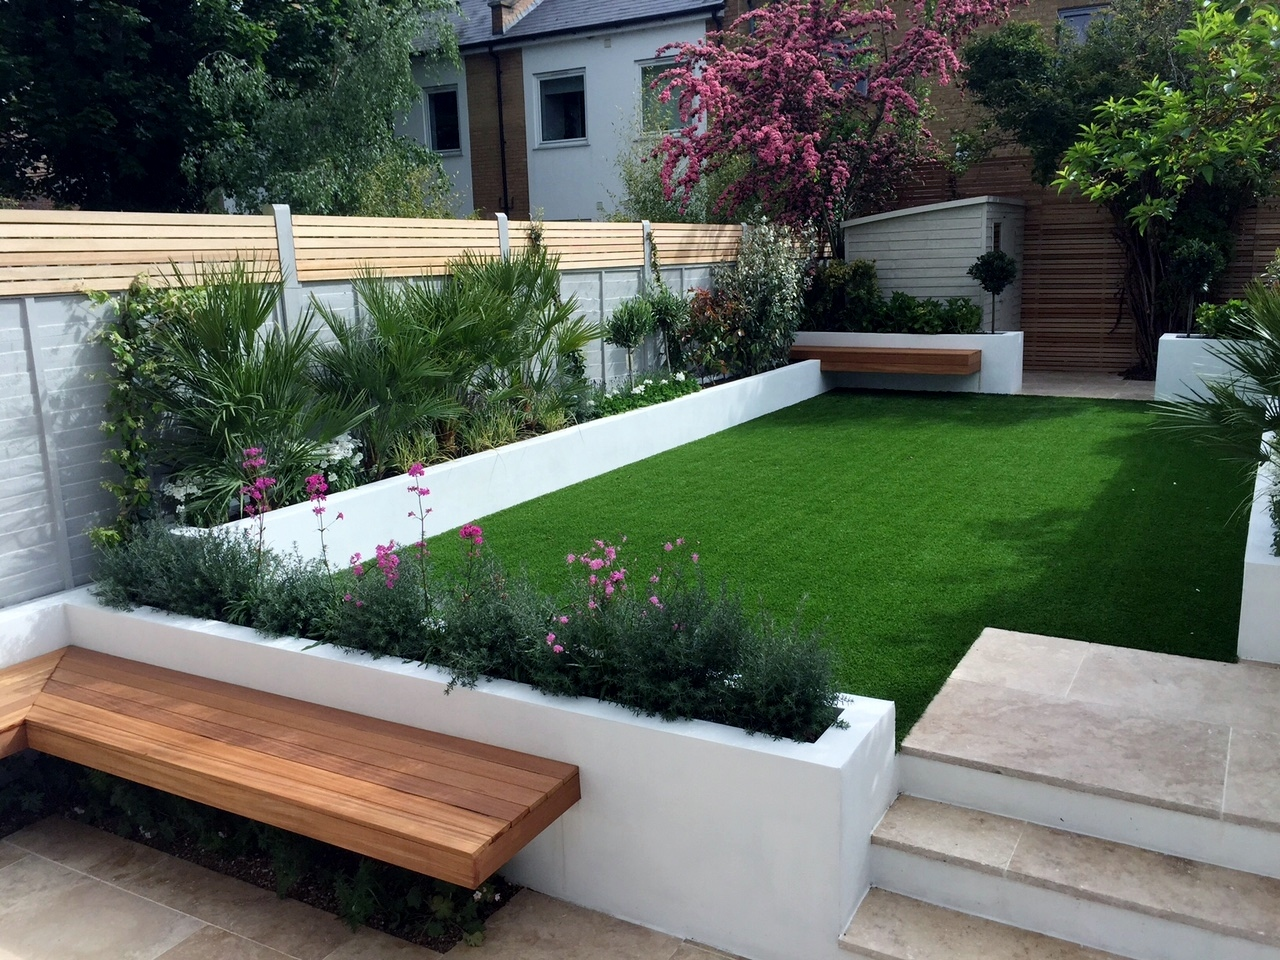 Modern garden design ideas fulham chelsea battersea for Indoor garden design uk